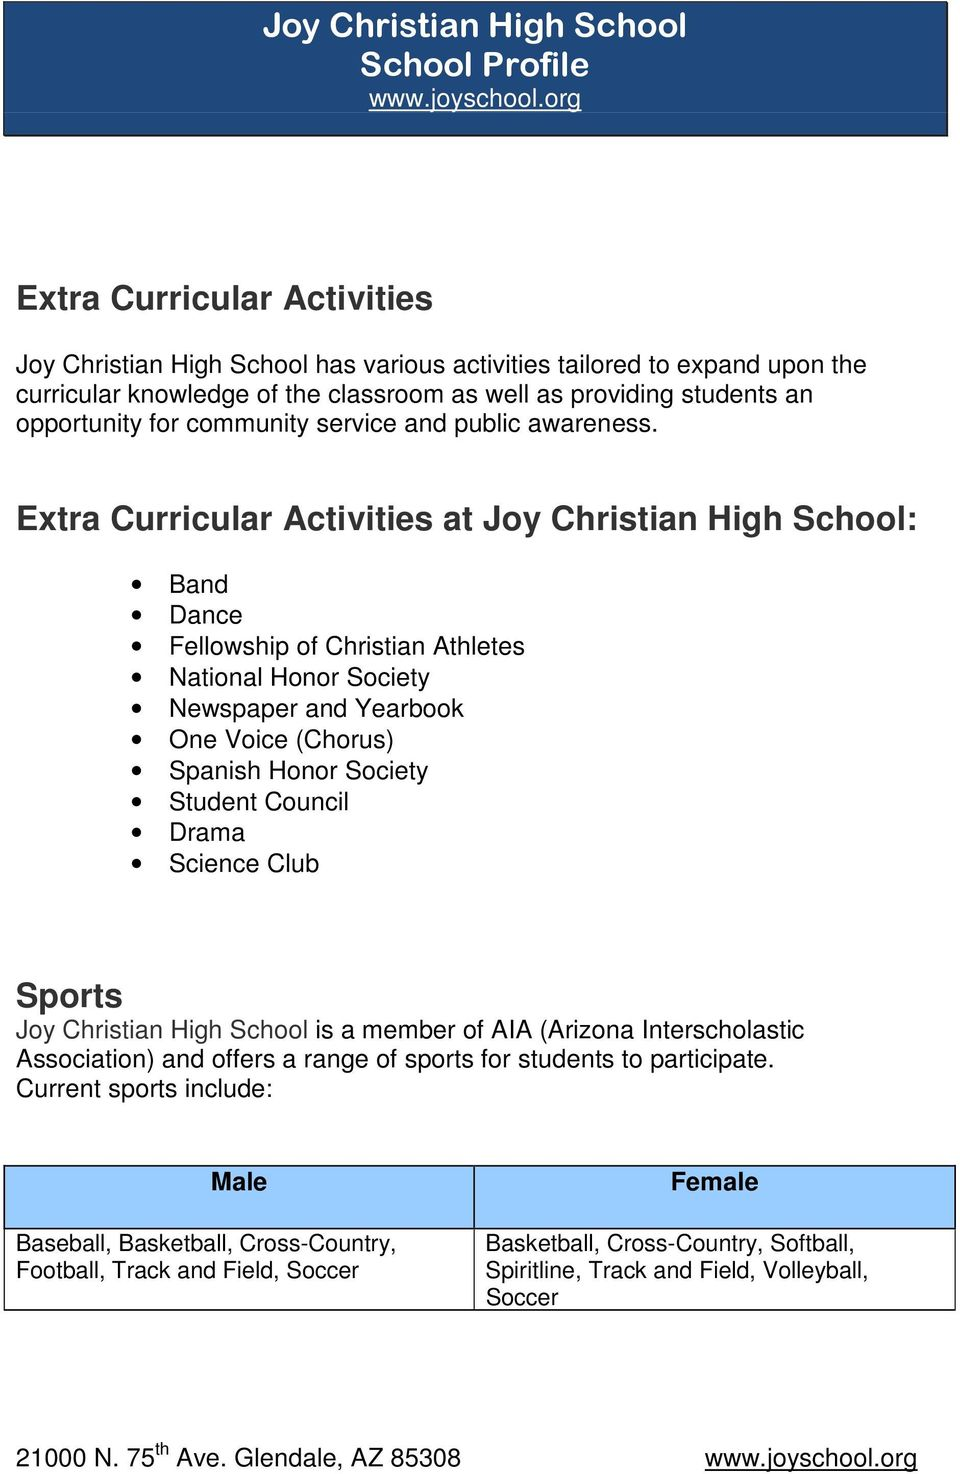 Extra Curricular Activities at Joy Christian High School: Band Dance Fellowship of Christian Athletes National Honor Society Newspaper and Yearbook One Voice (Chorus) Spanish Honor Society Student